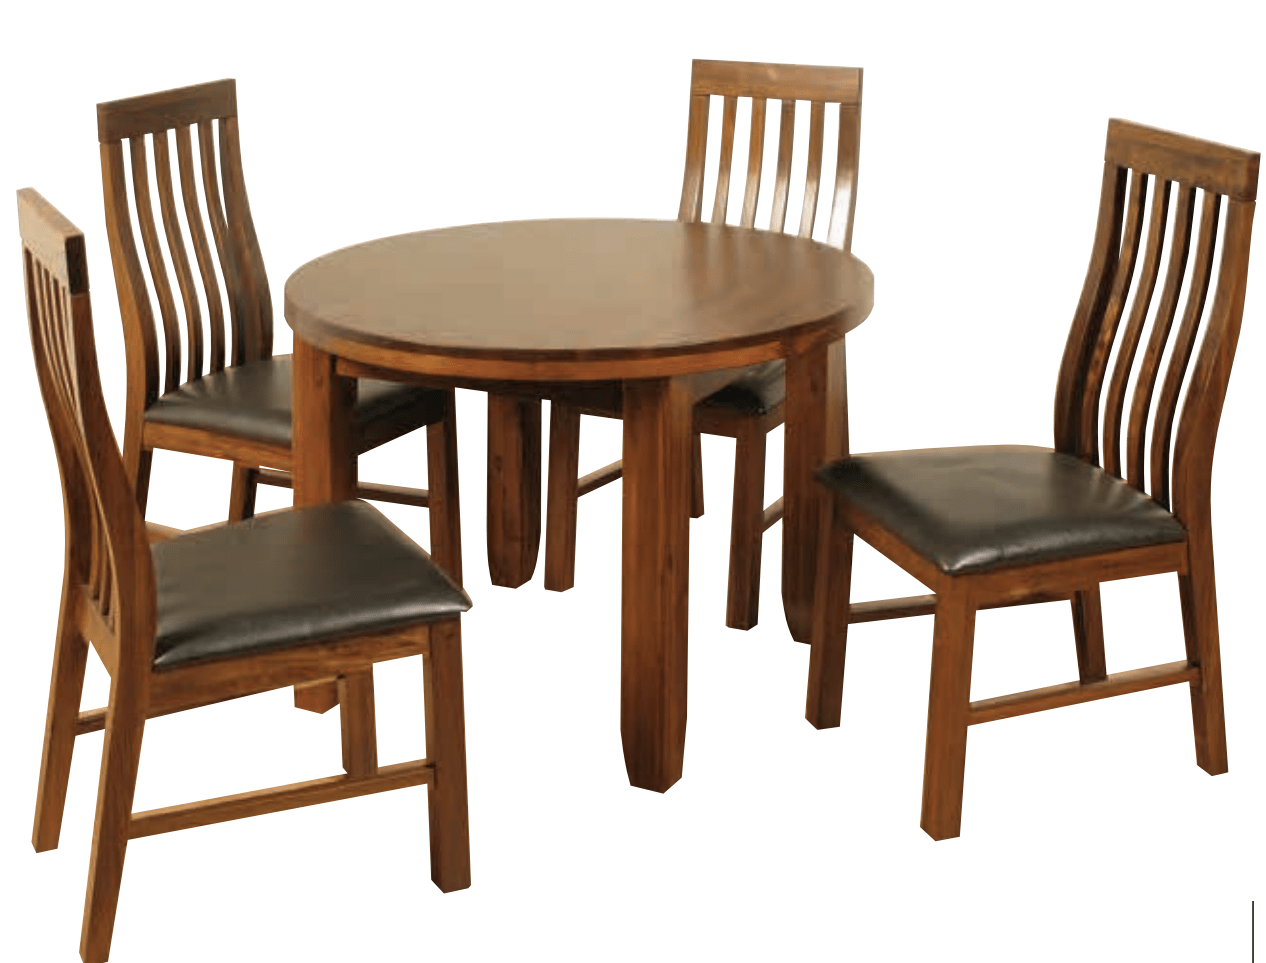 2ebf8c67dd5b ... Round Dining Table Return to Previous Page. lightbox